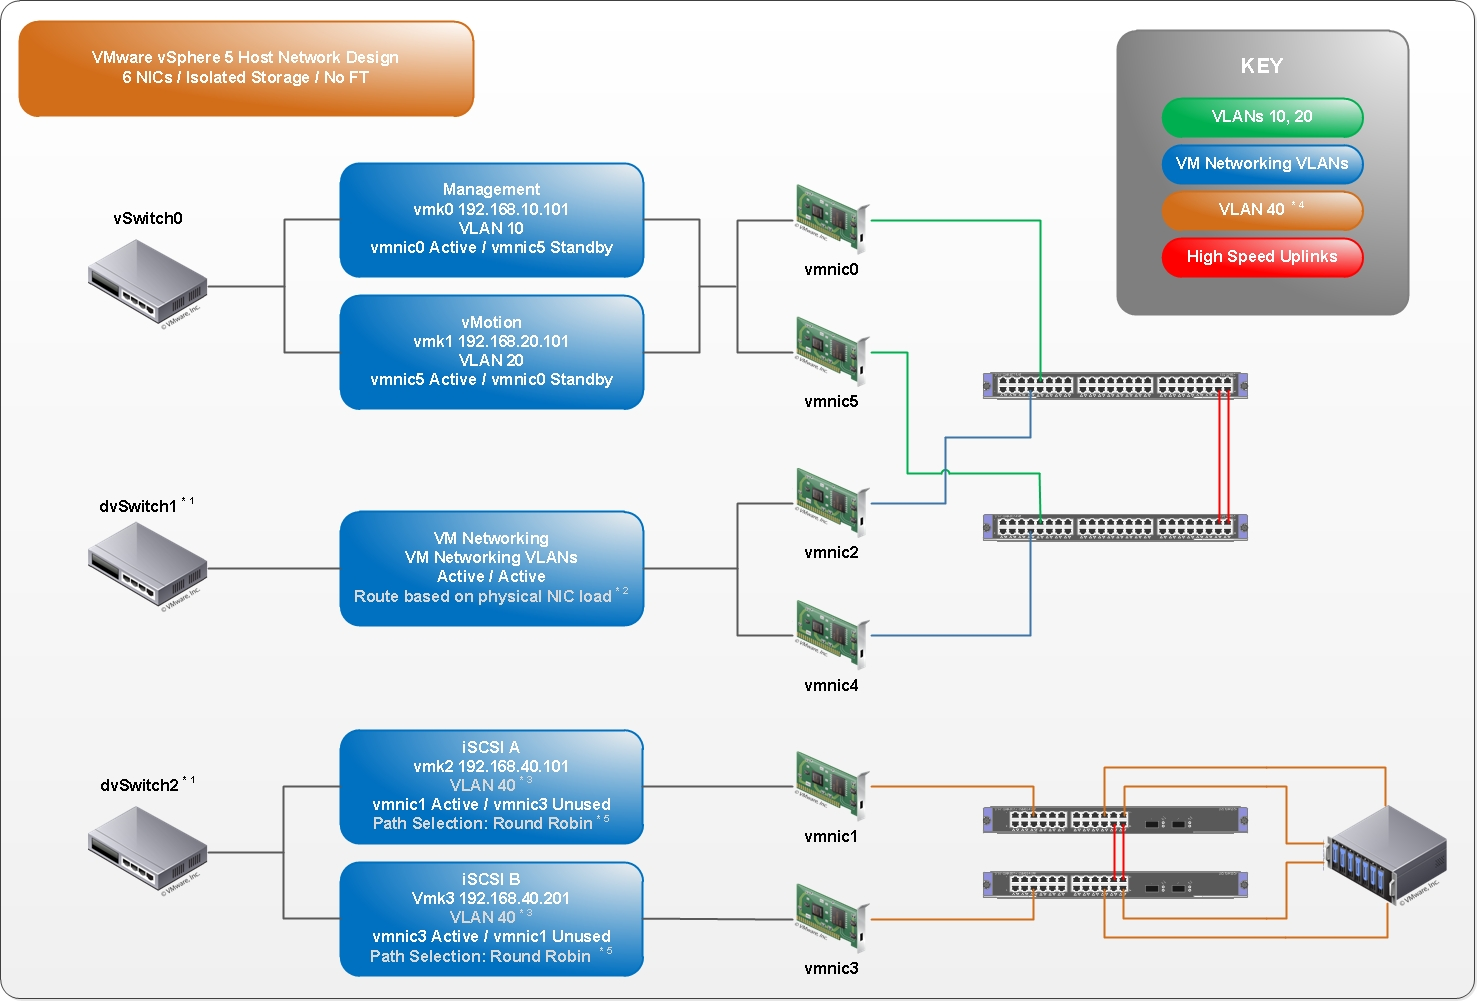 Routing between remote sites vmware communities for Vmware vsphere 6 architecture